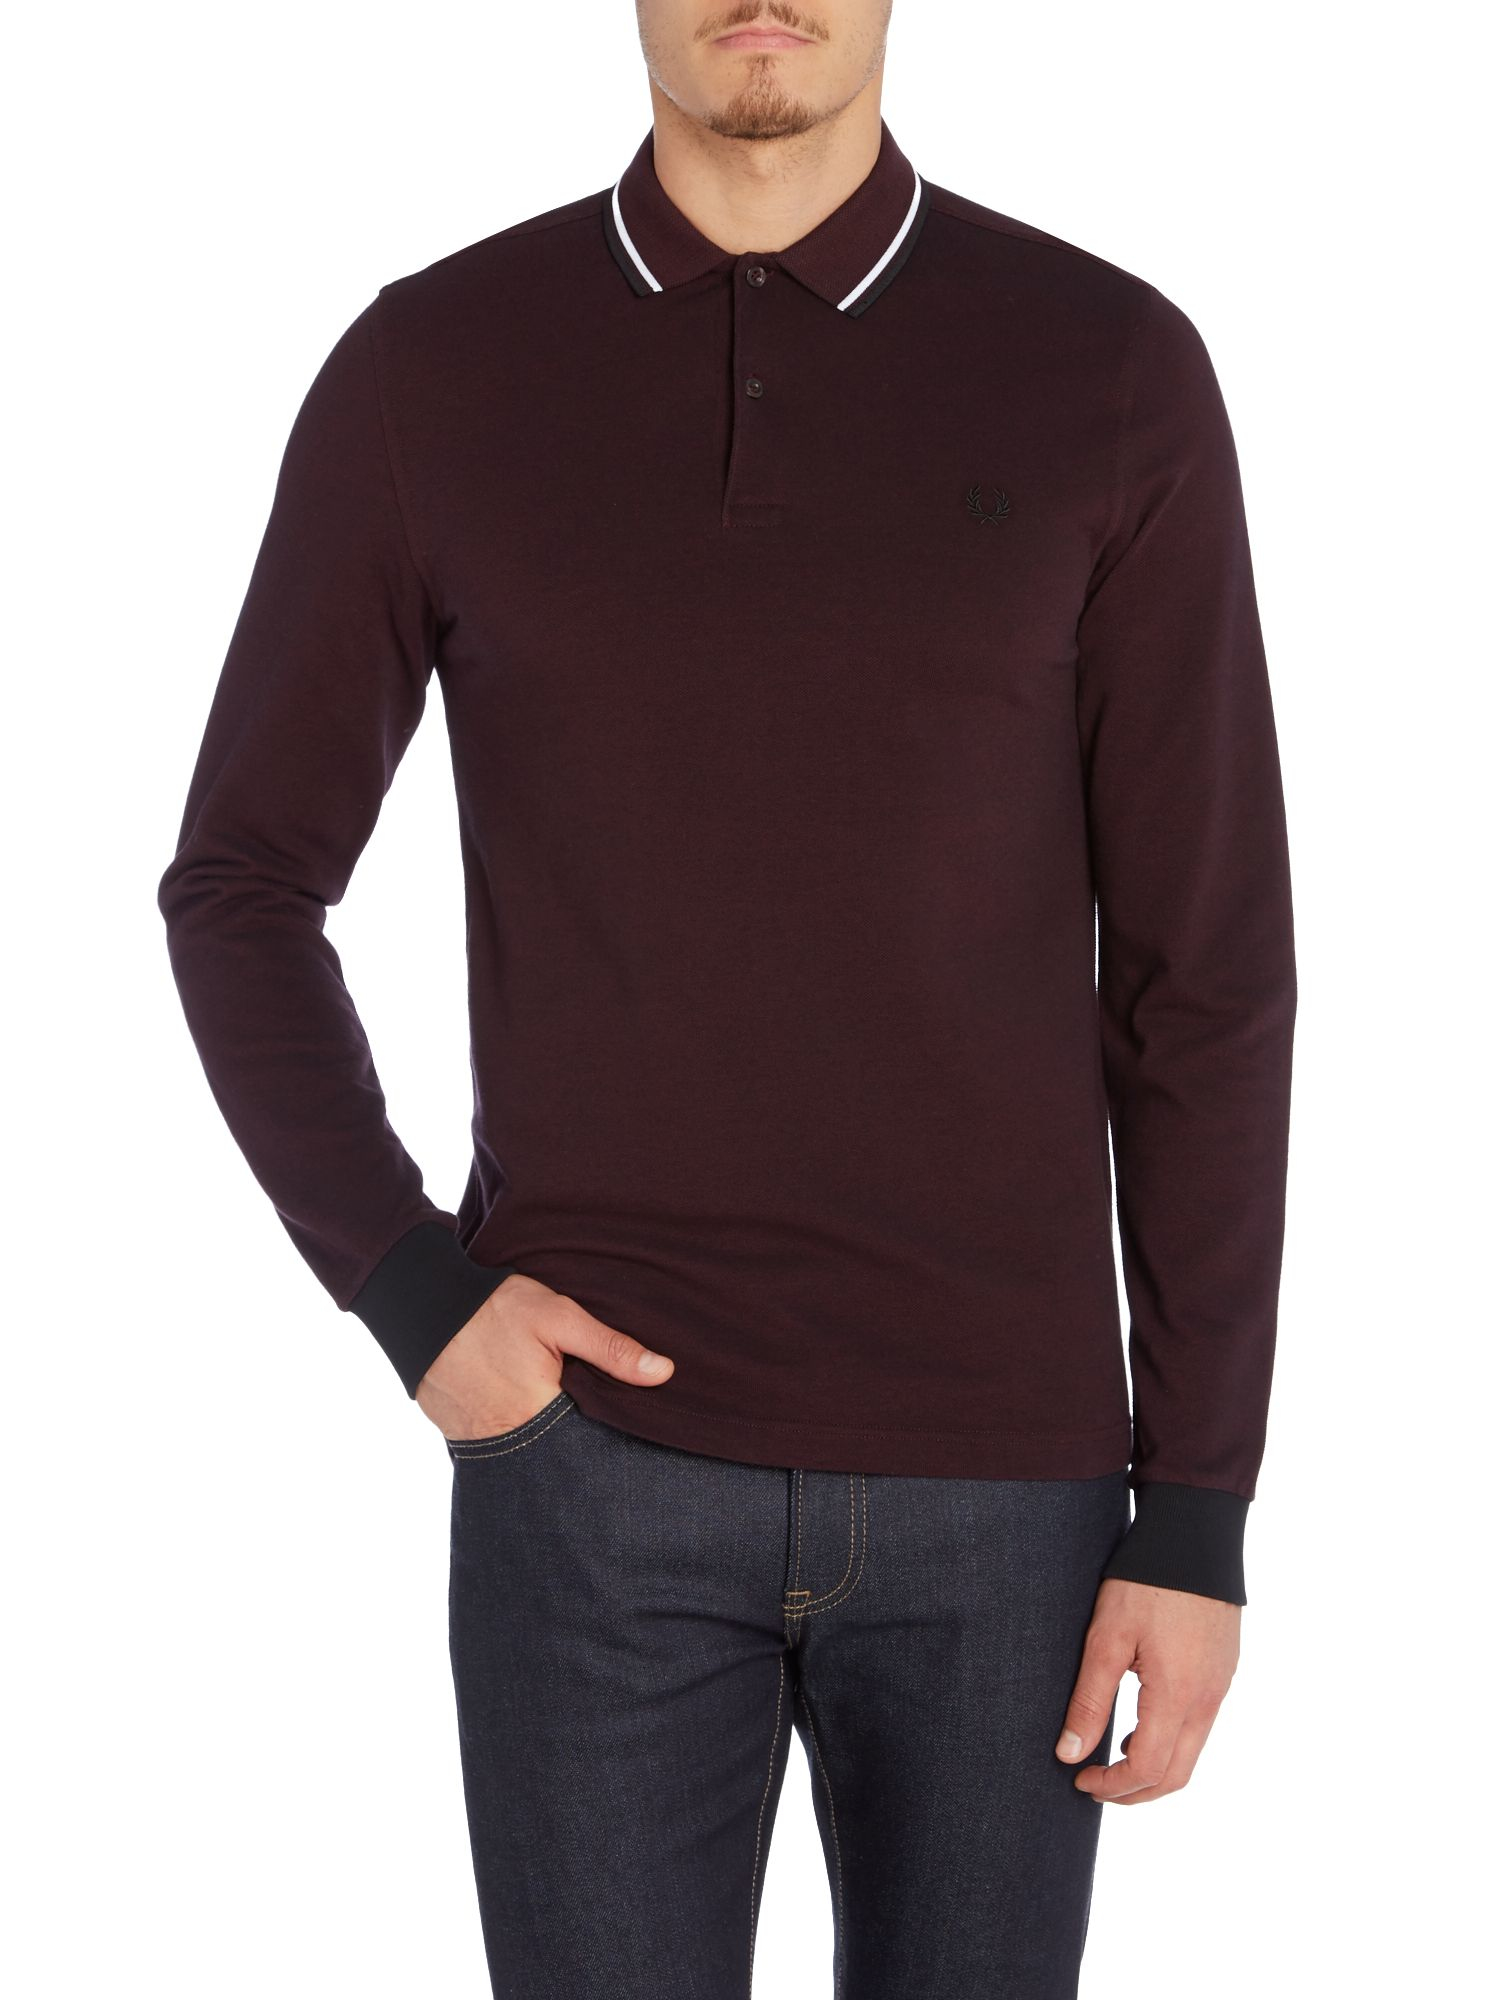 Fred perry long sleeve twin tipped polo shirt in purple for Long sleeve purple polo shirt